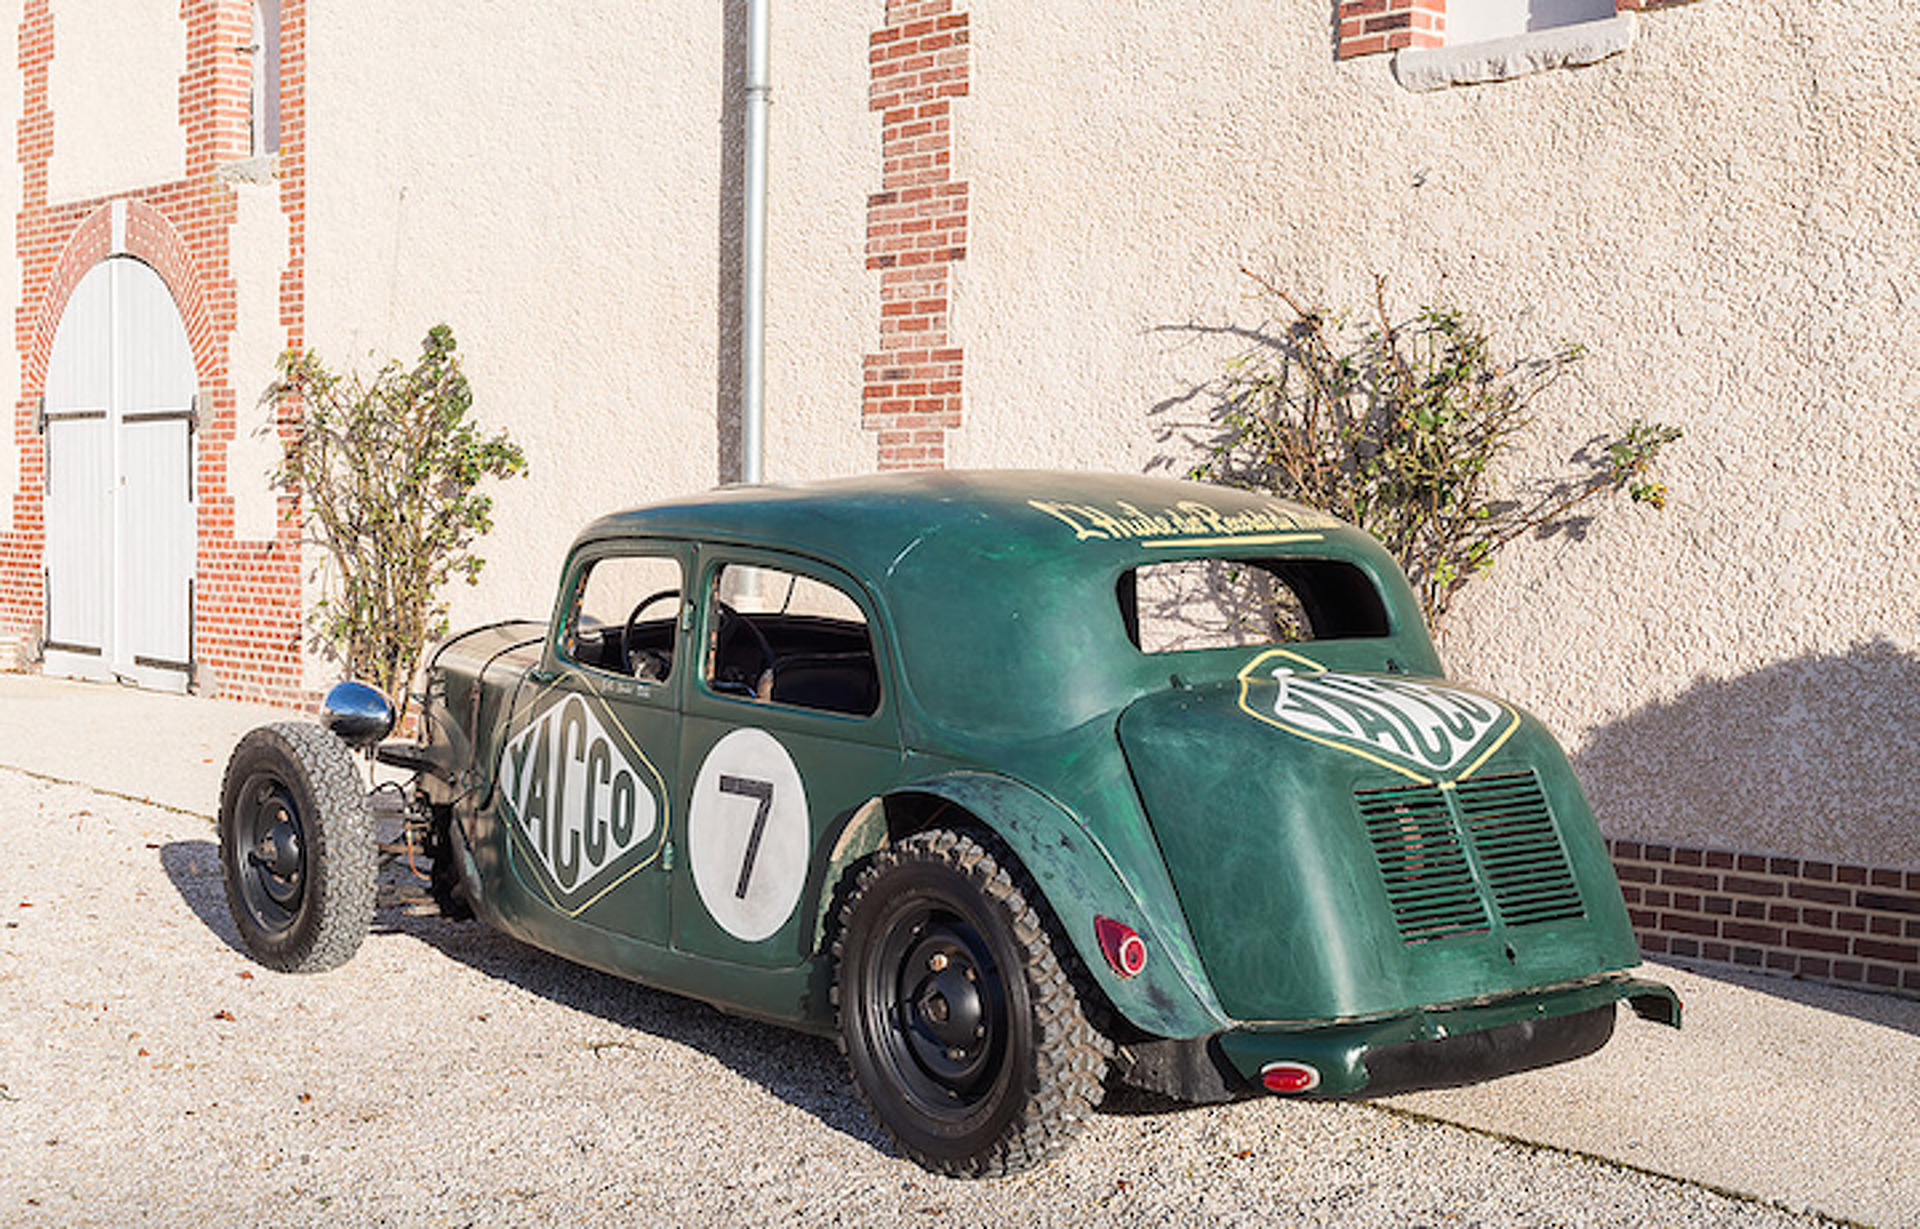 This Beautiful Citroen Race Car, Be the Coolest Guy at the Dirt Track